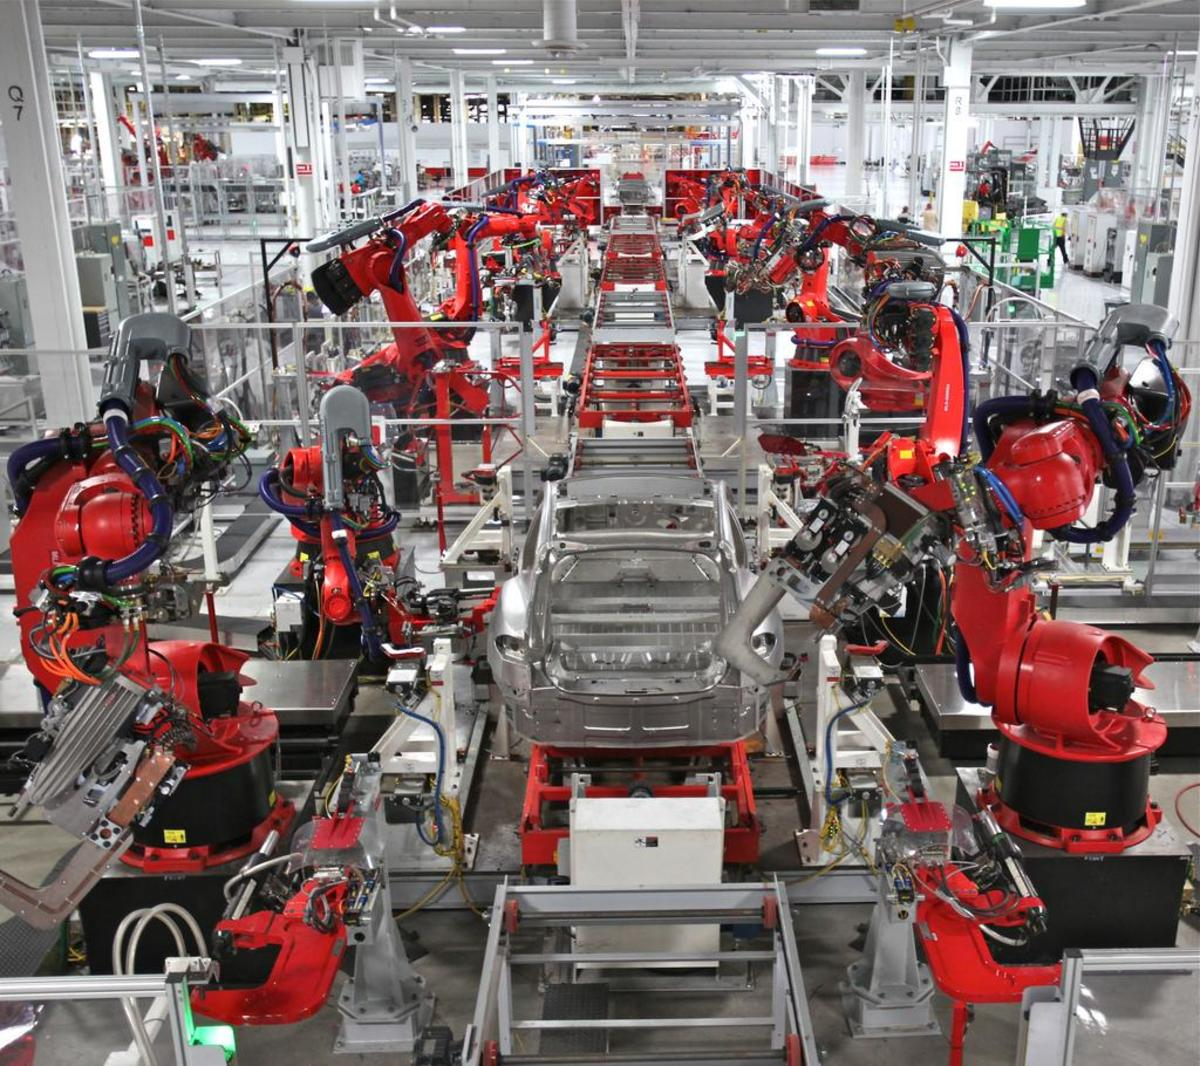 Tesla's robotic systems at work